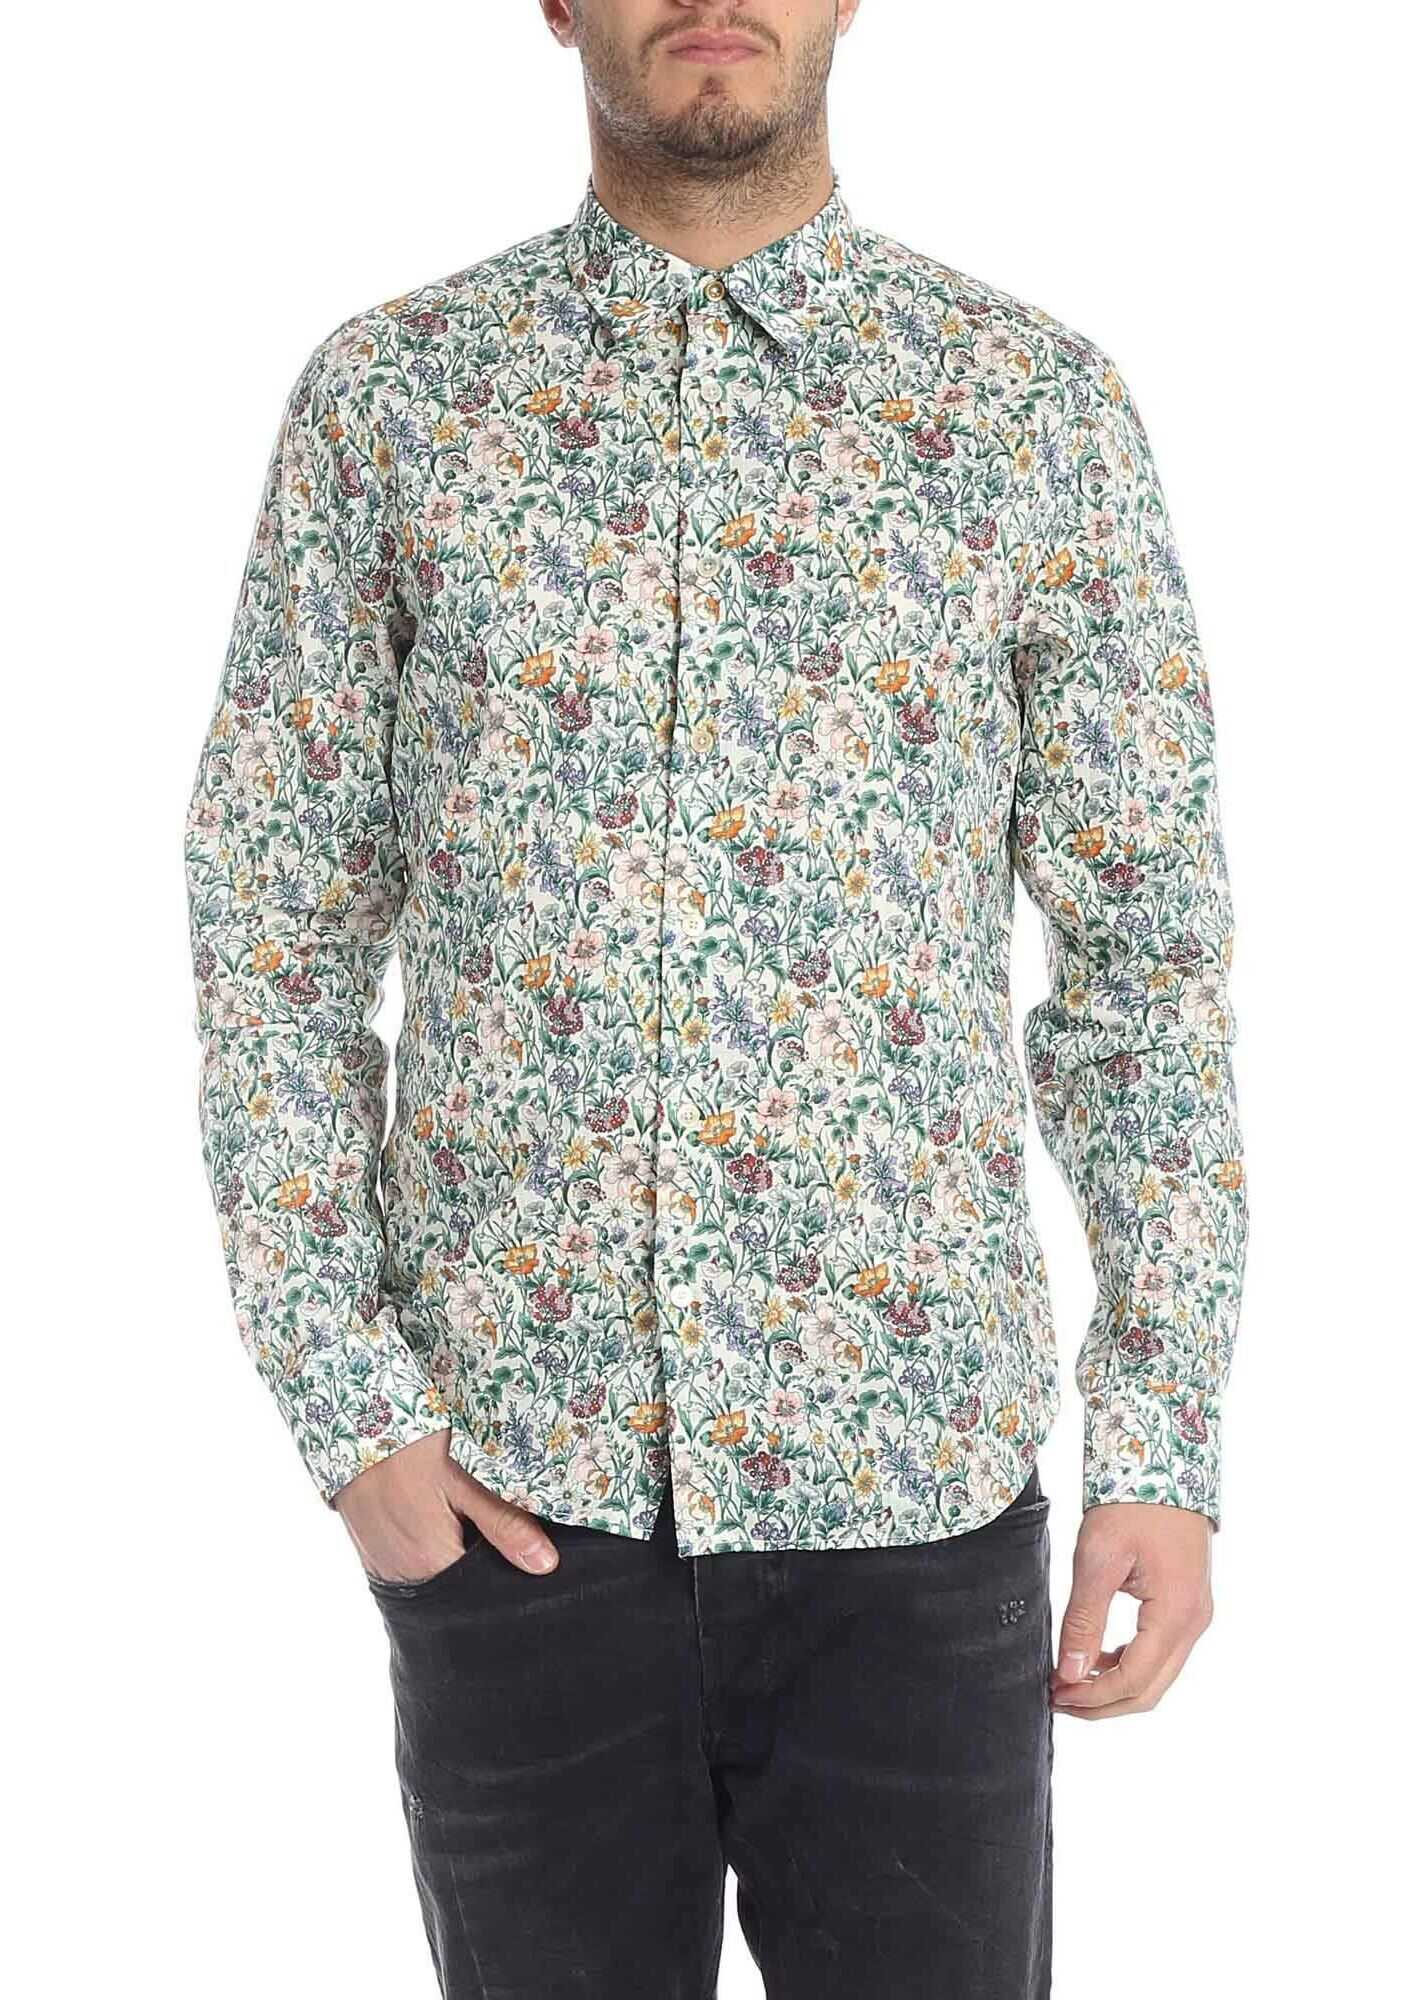 Paul Smith Liberty Spring Shirt In Multicolor Multi